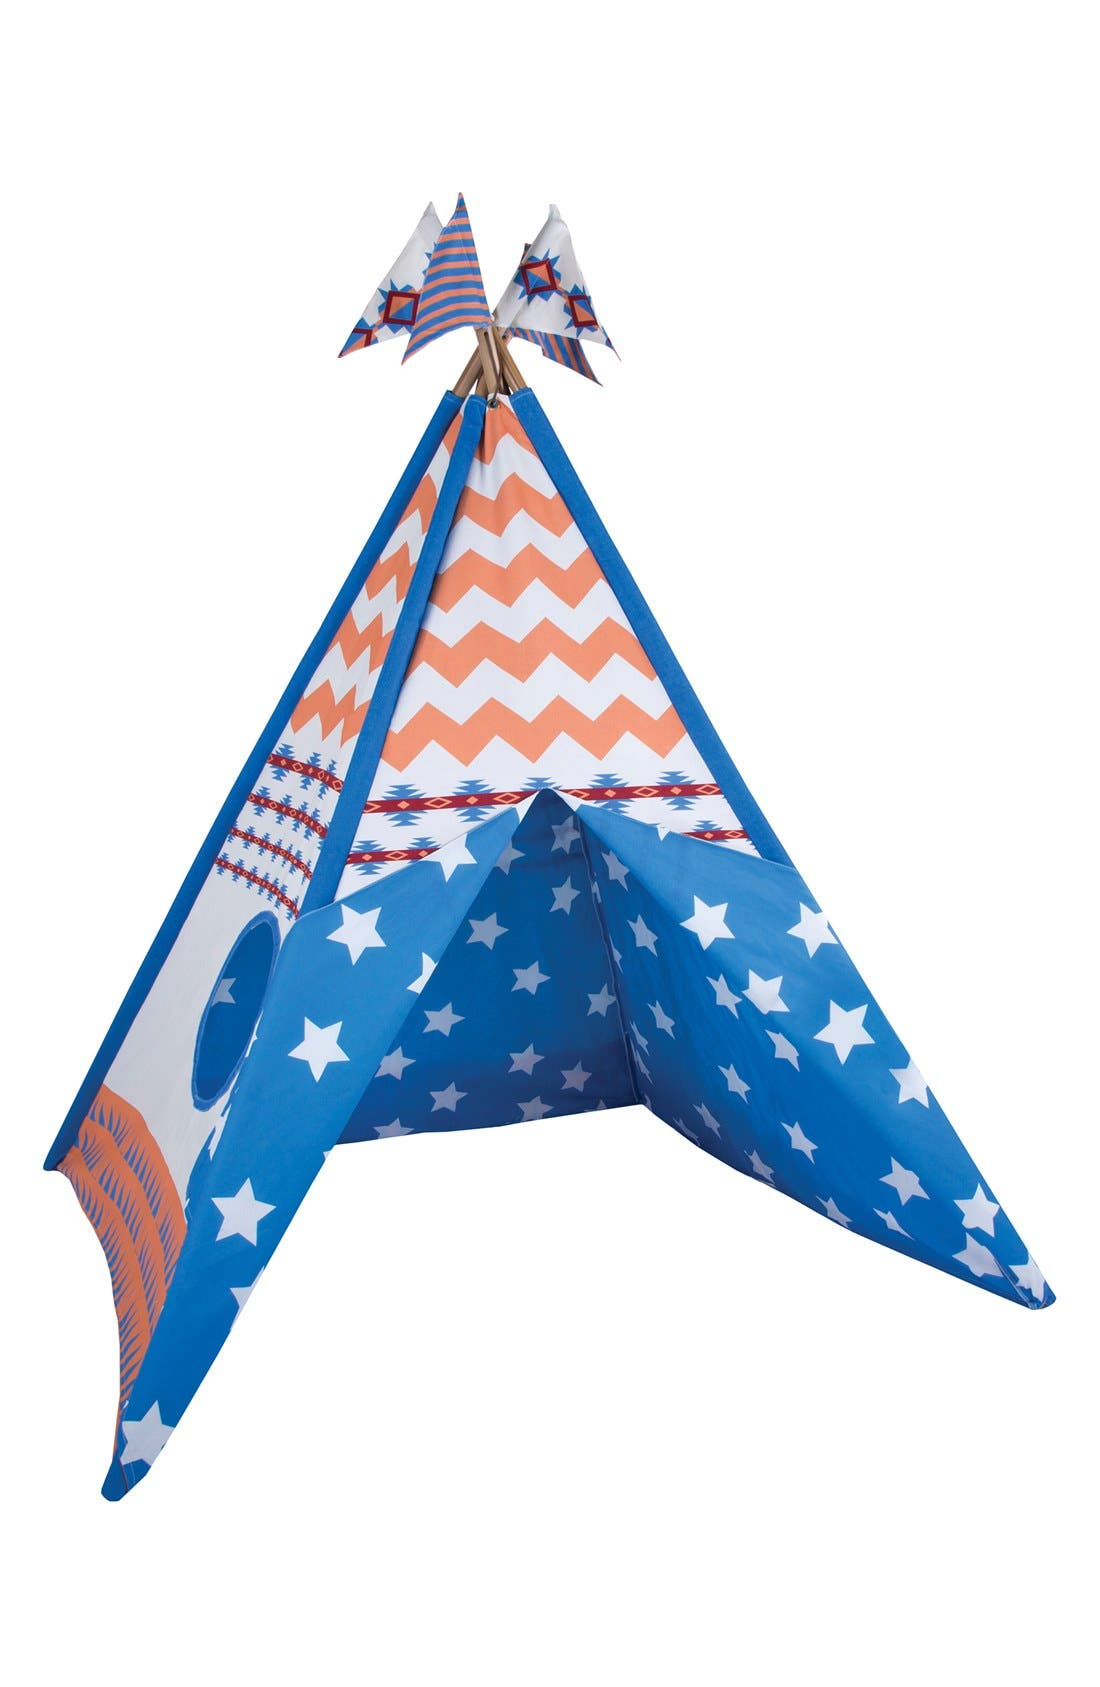 Alternate Image 1 Selected - Pacific Play Tents 'Vintage' Cotton Canvas Teepee